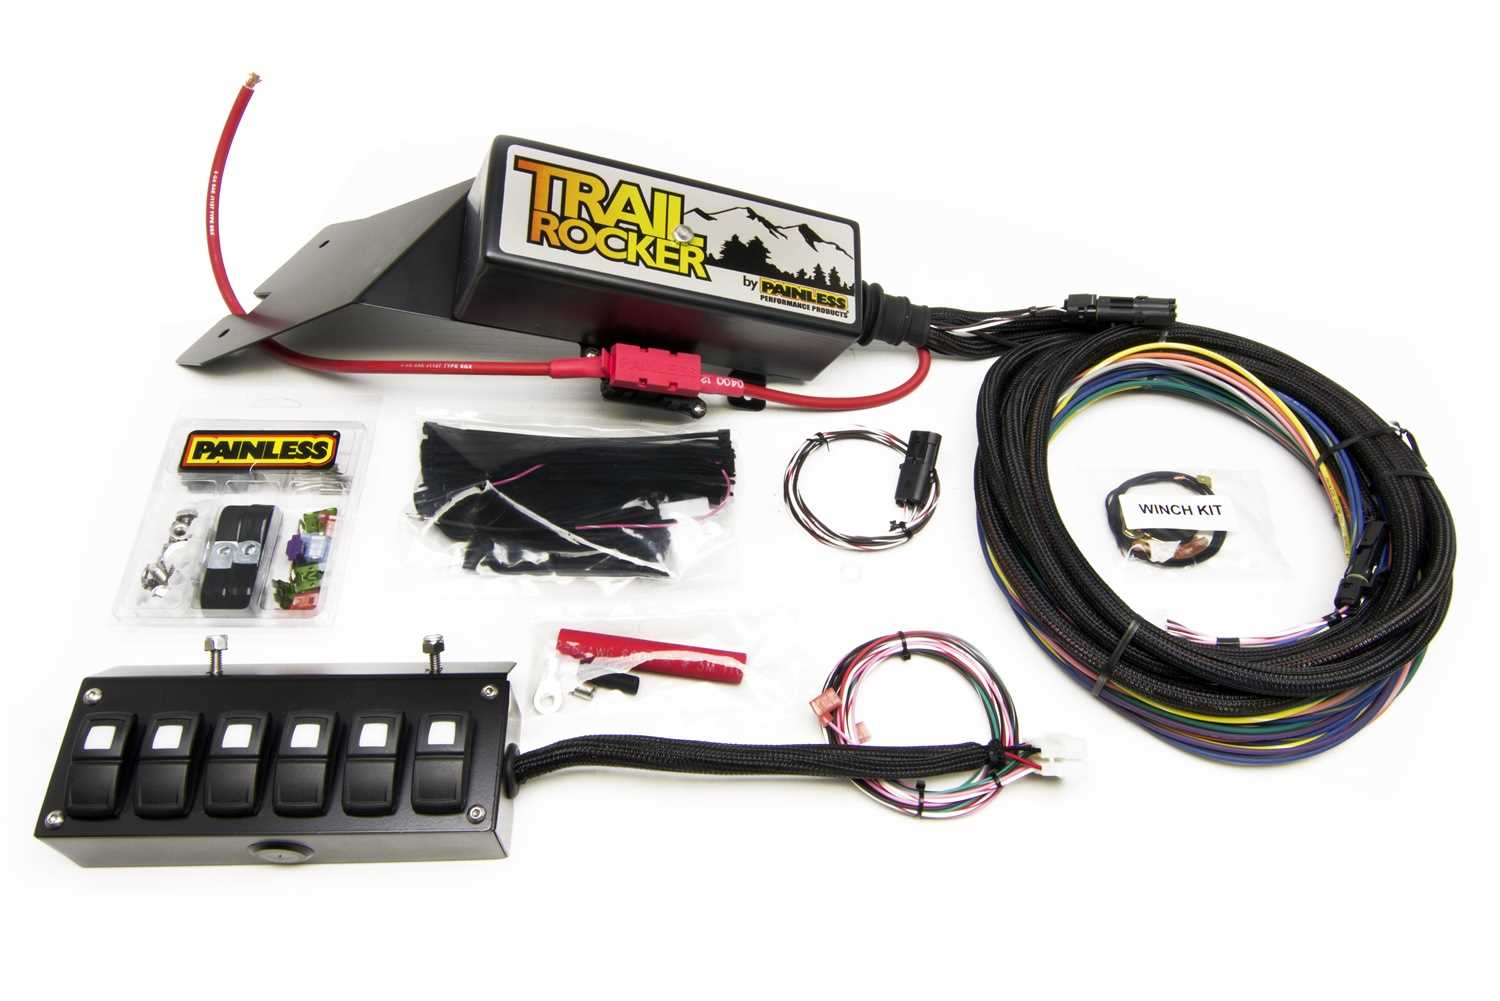 Trail Rocker System Kit Rust Check Painless Wiring Relay 57022